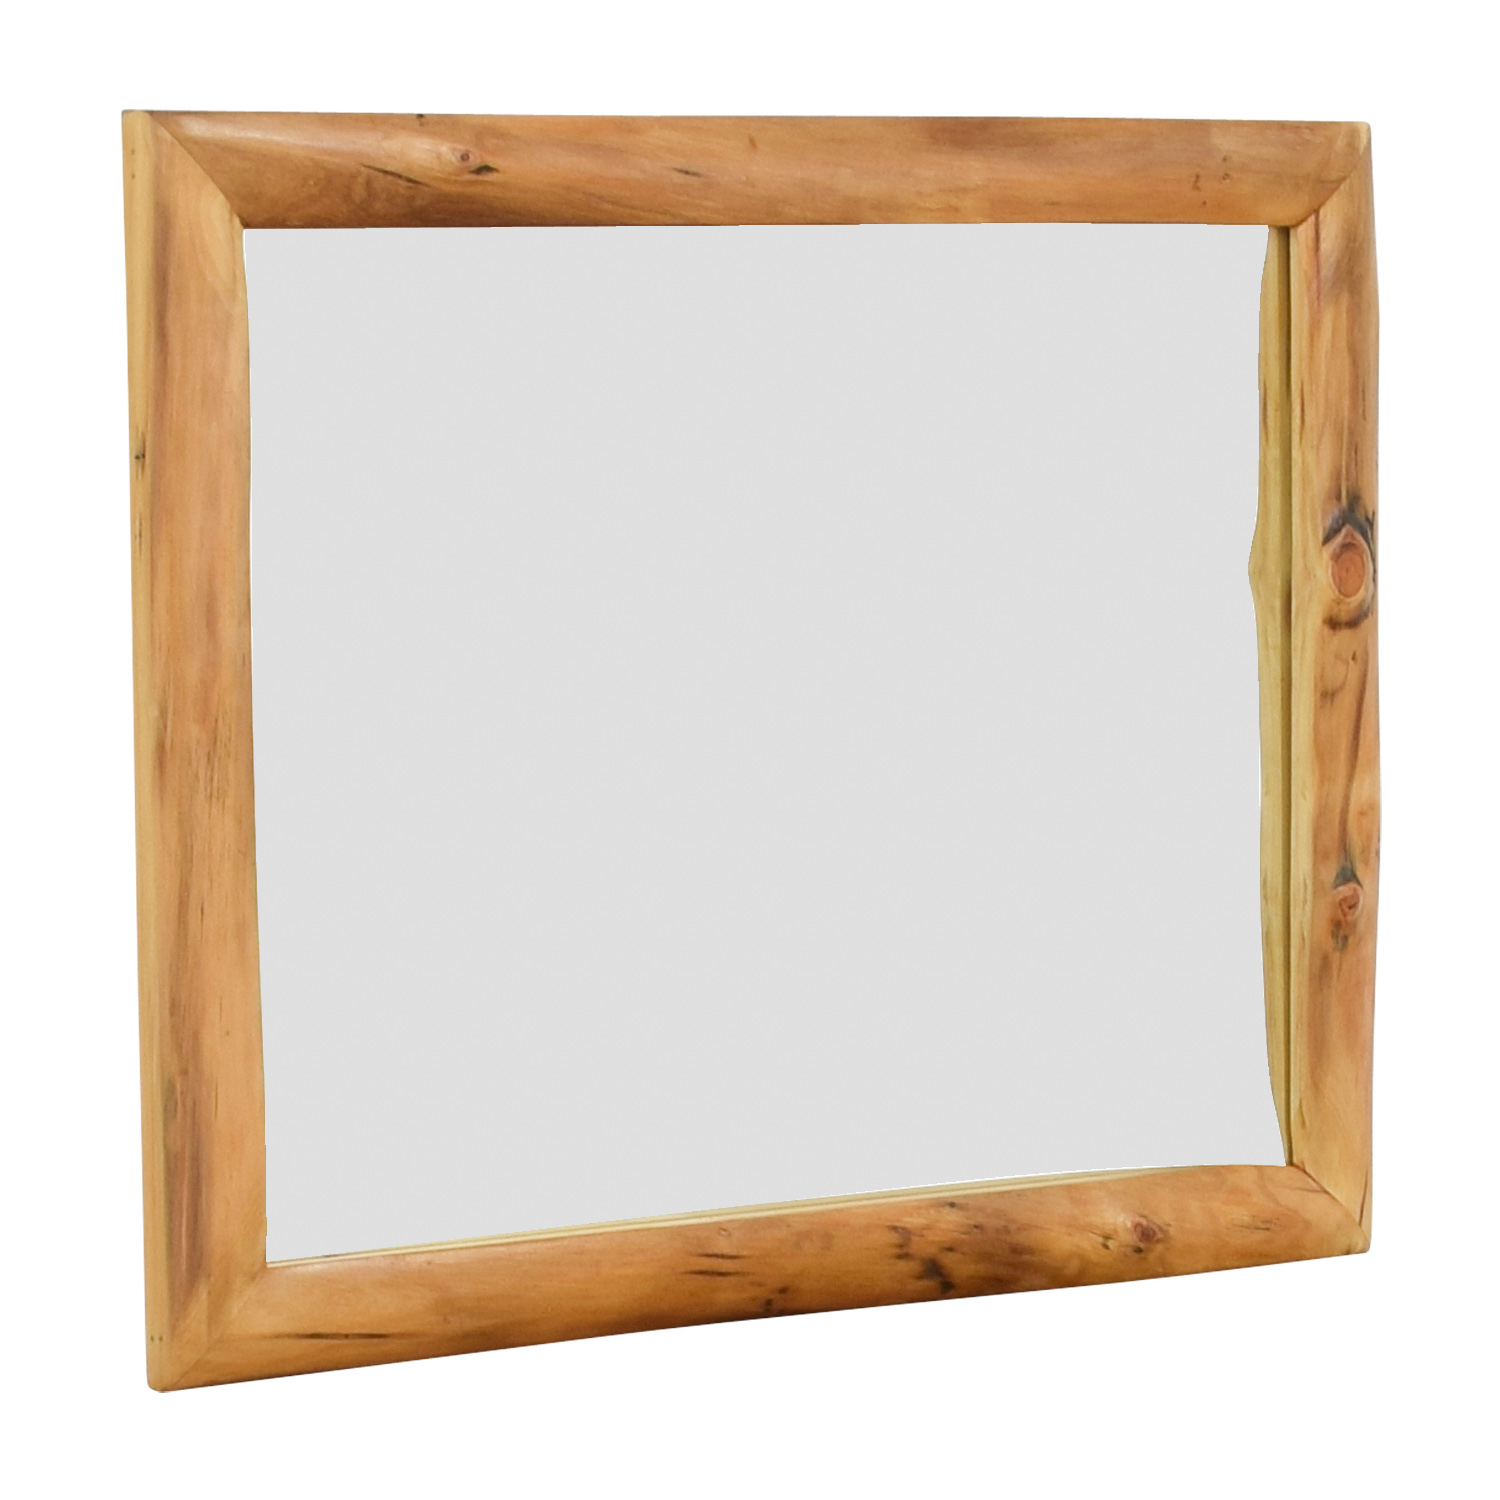 Natural Wood Mirror second hand